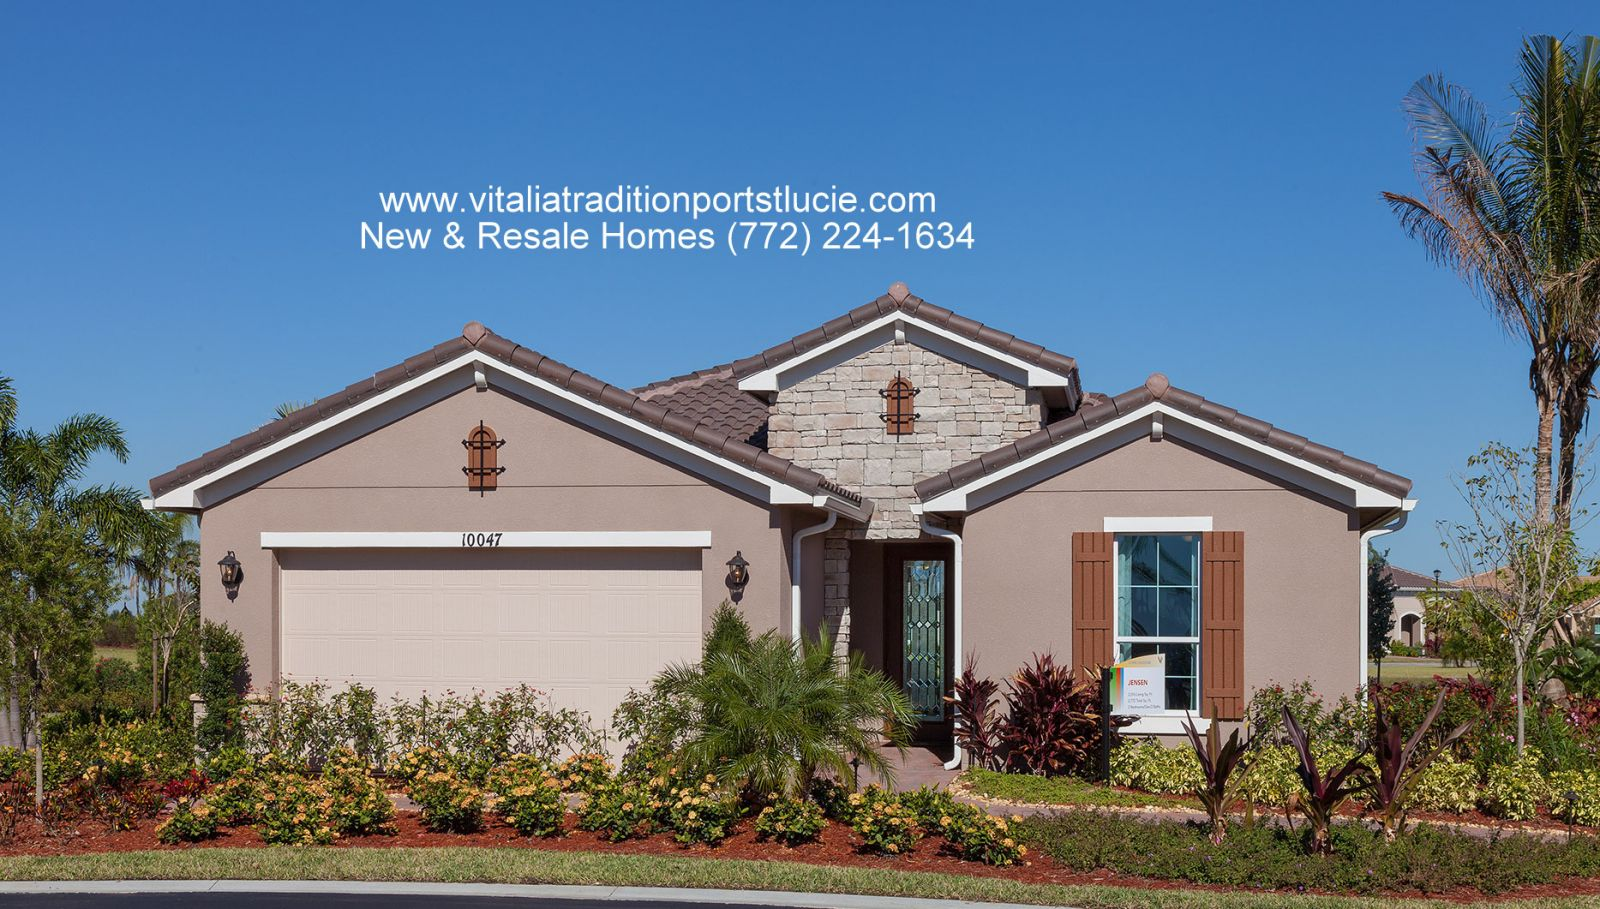 Vitalia Tradition Port St Lucie Homes